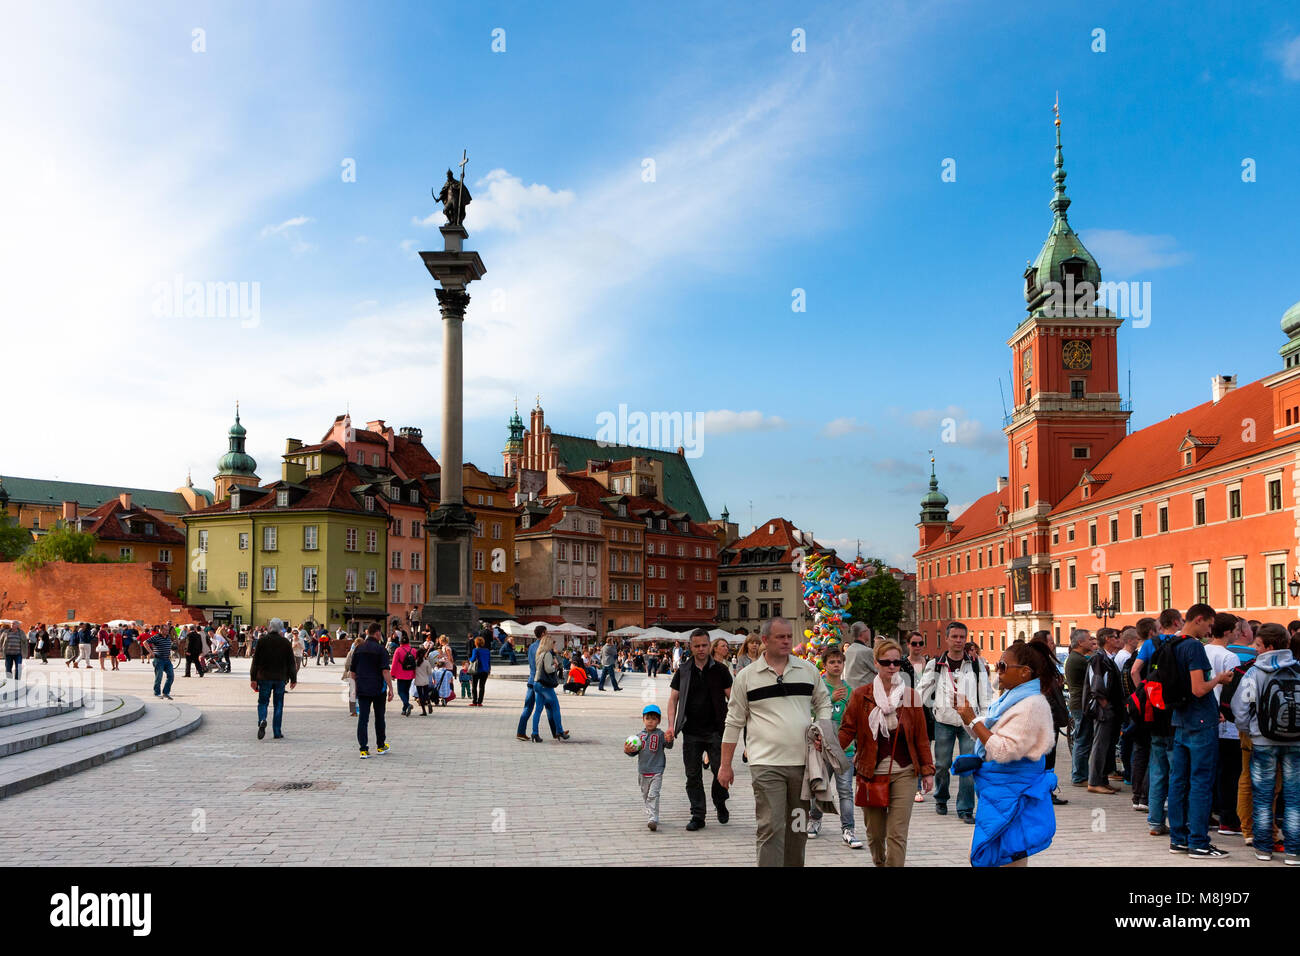 Castle Square full of tourists and Sigismund's Column, major tourist attractions of Warsaw. POLAND - MAY 18, 2014: Stock Photo